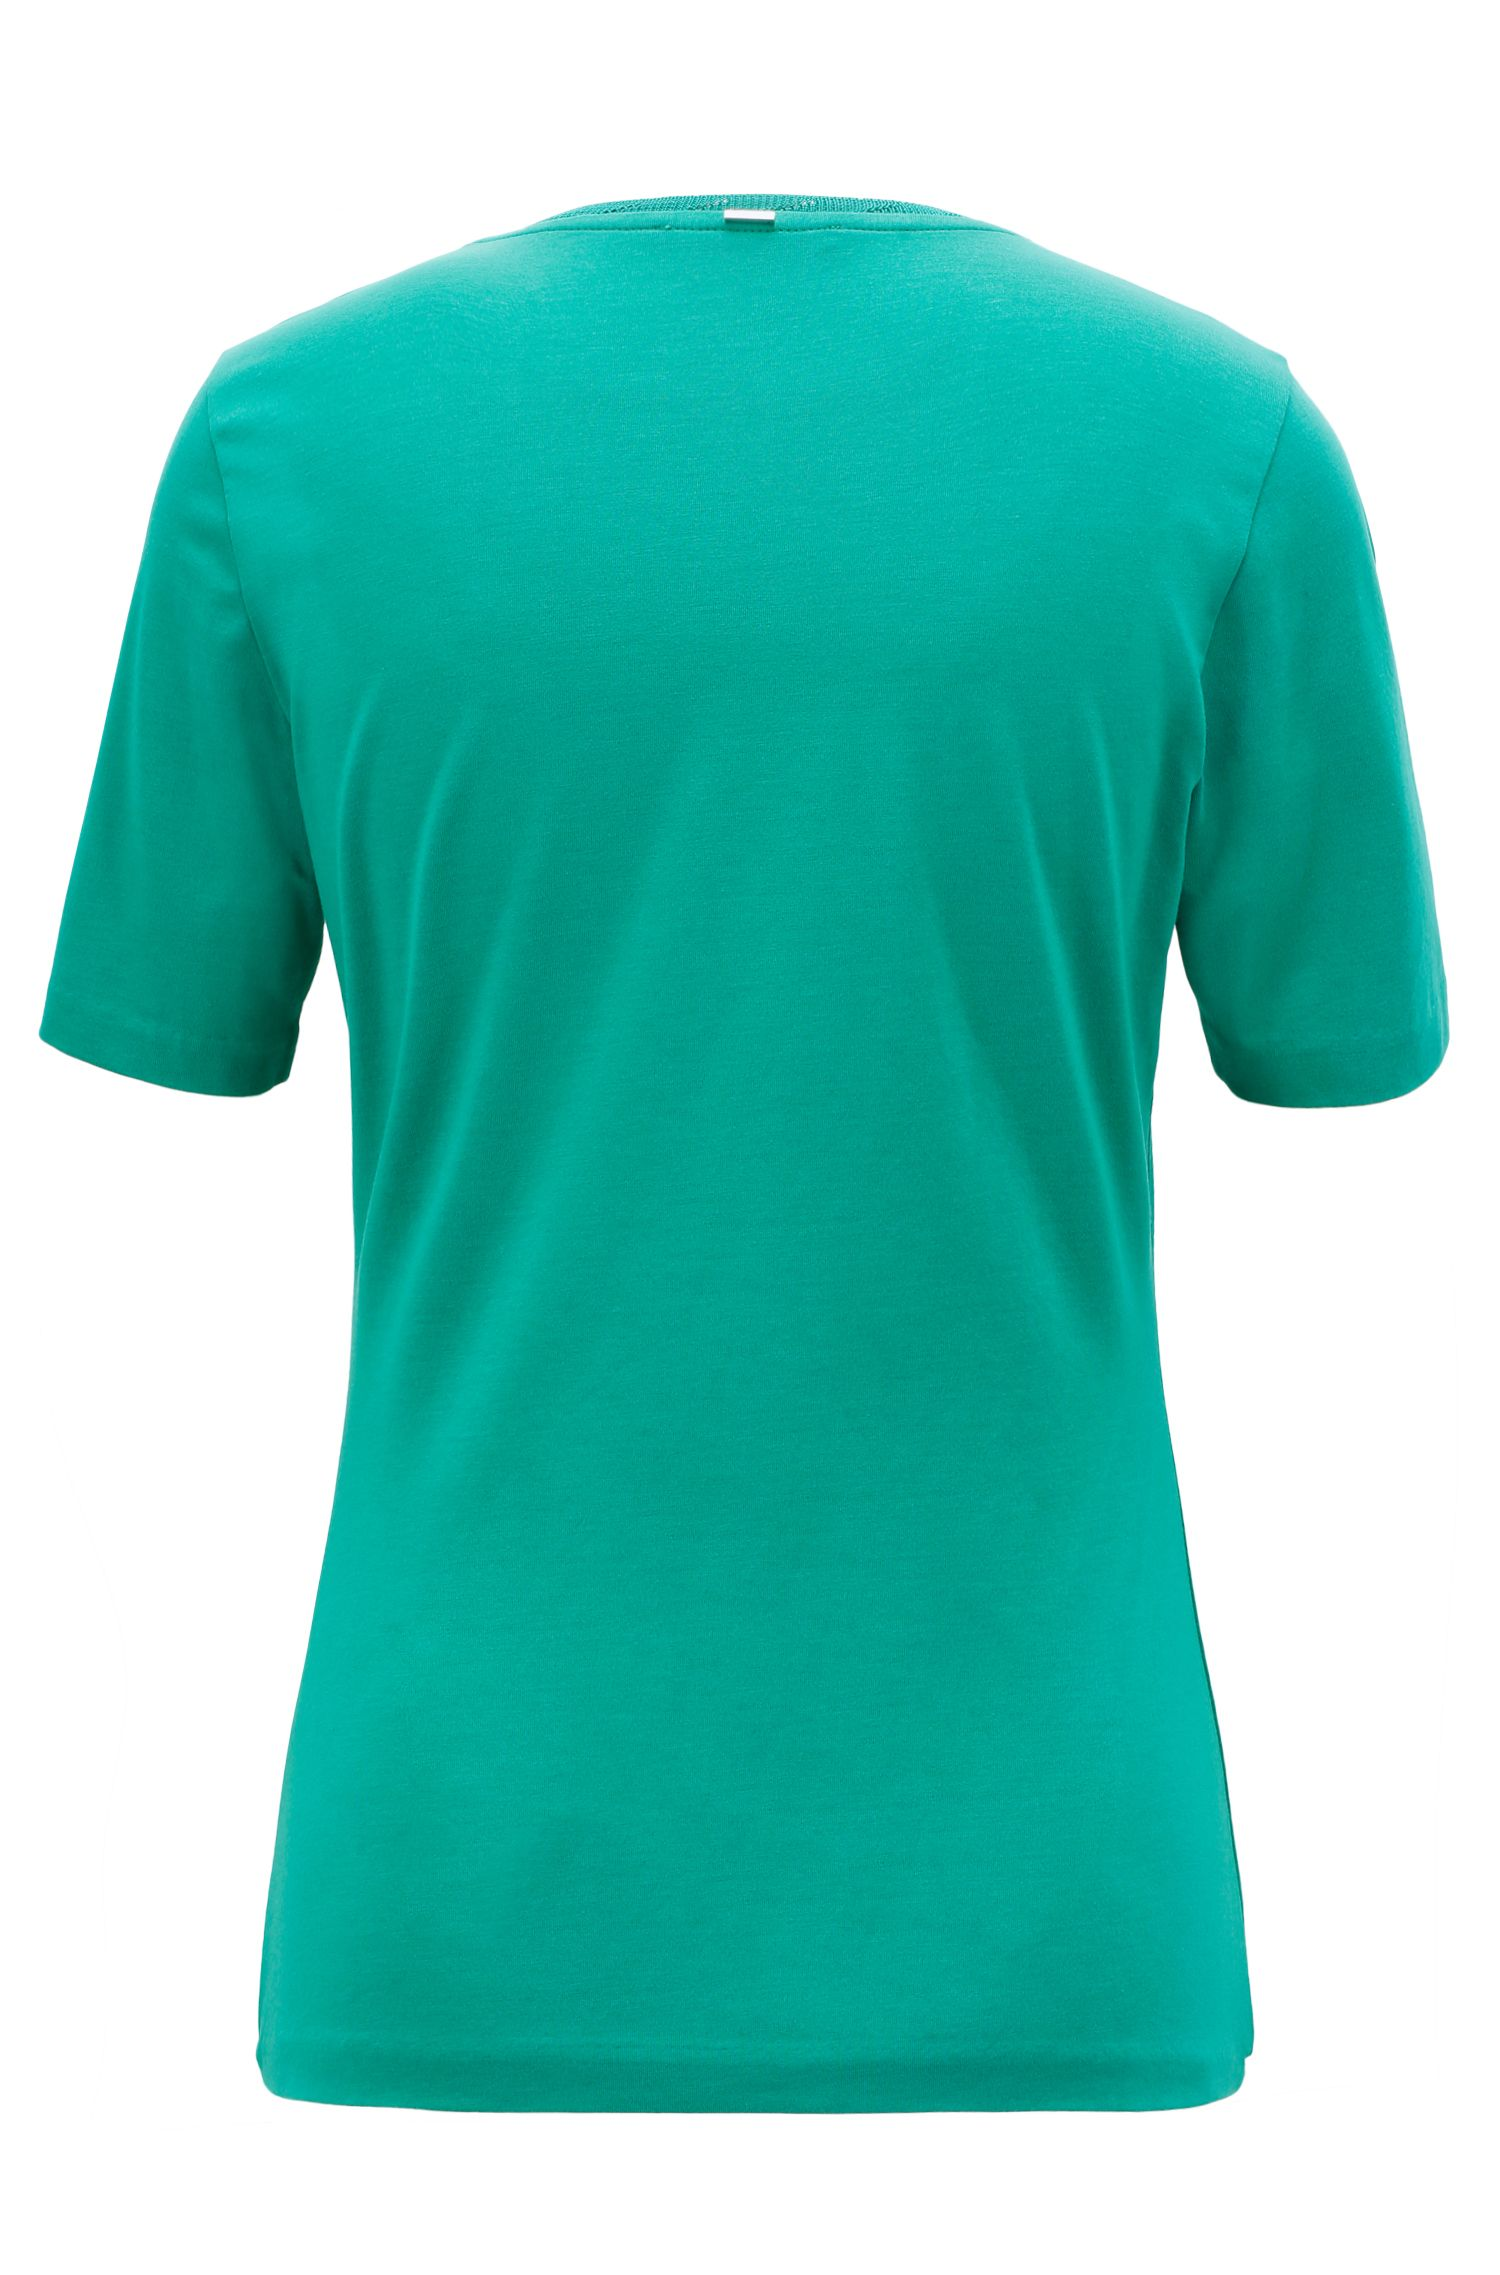 Regular-fit crew-neck top in stretch jersey, Open Green